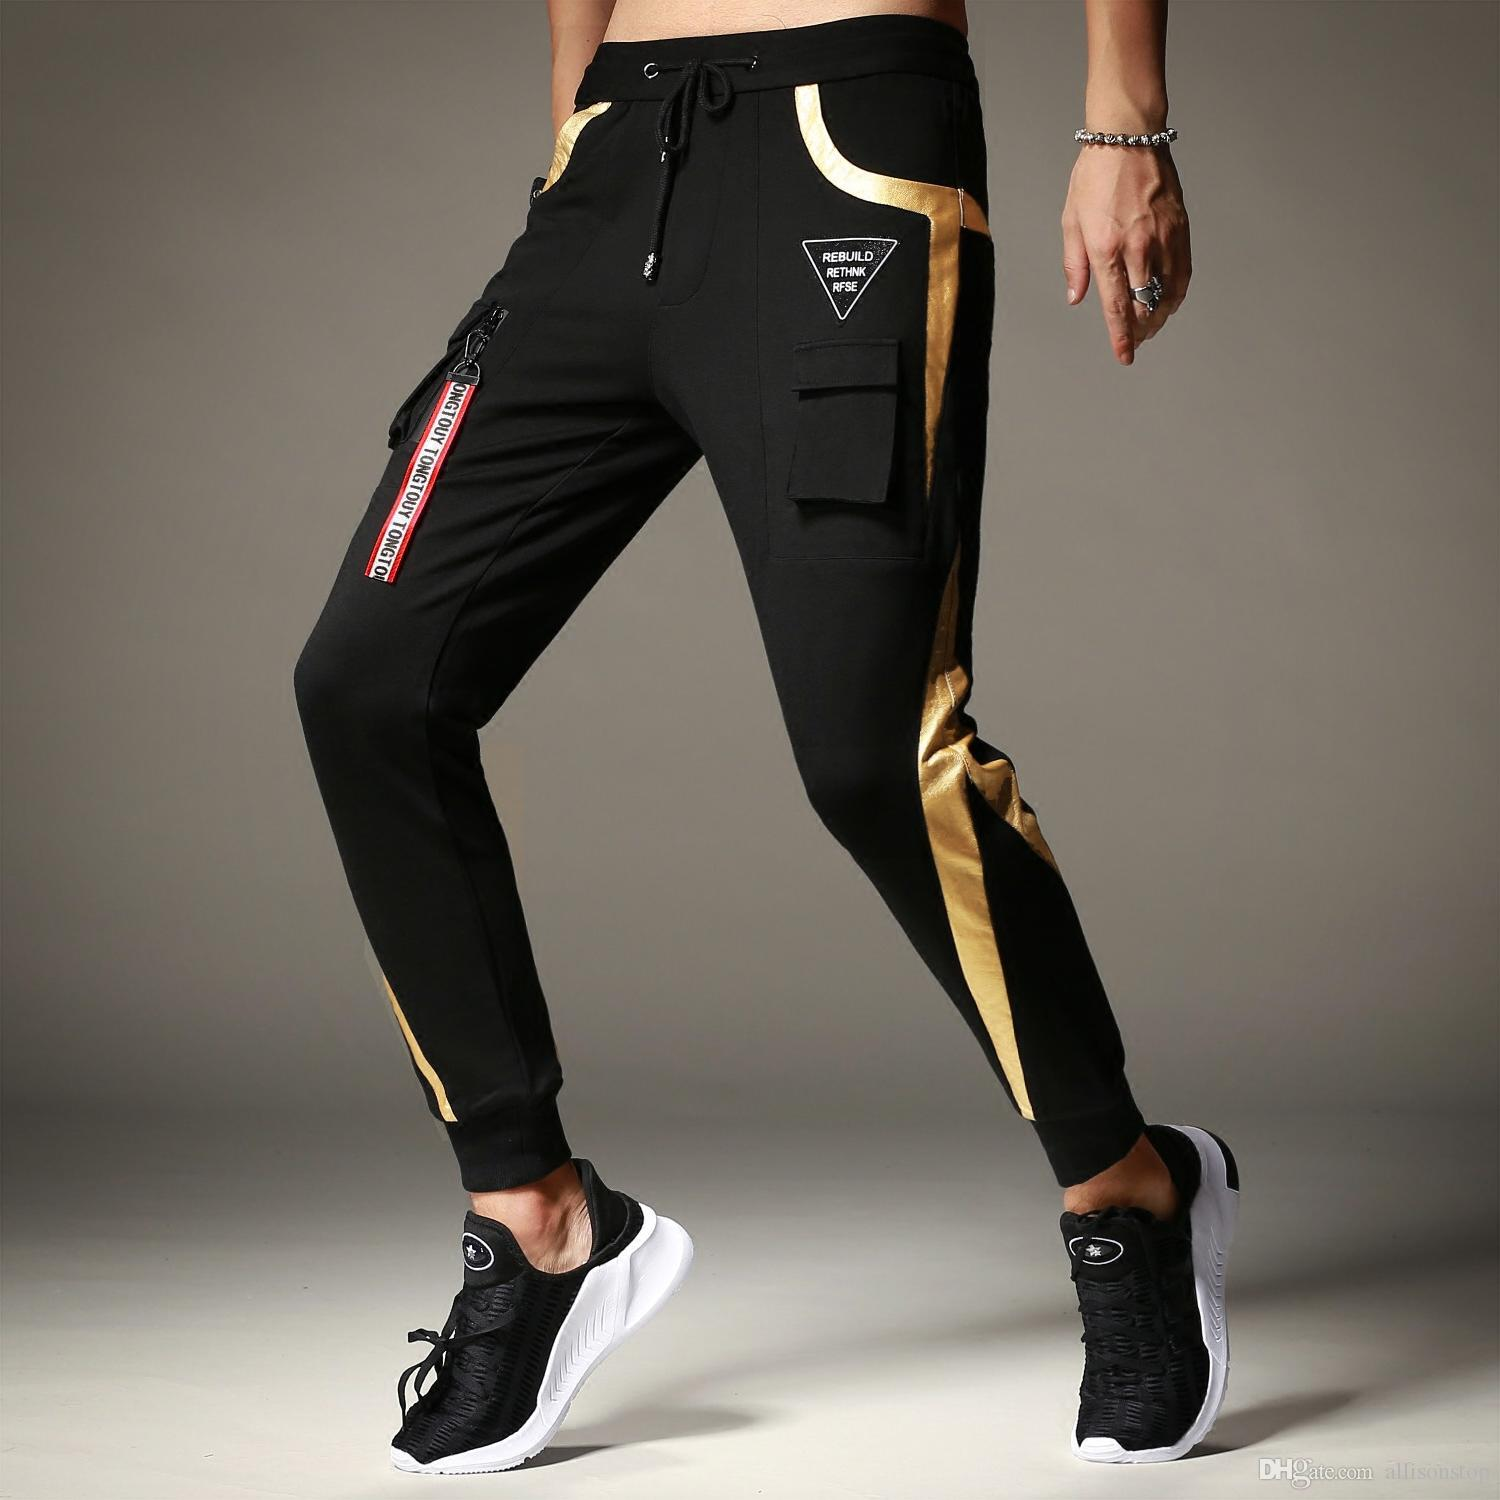 Luxurious 2018 New Arrival Mens Causal Pants Sports Thick Personality Slim Fit Boystrousers Harlan Athletic Hip Hop Sweatpants Oversize M Loose Long 2018 New Arrival Mens Causal Pants Sports Thick Per houzz-02 Boys Athletic Pants